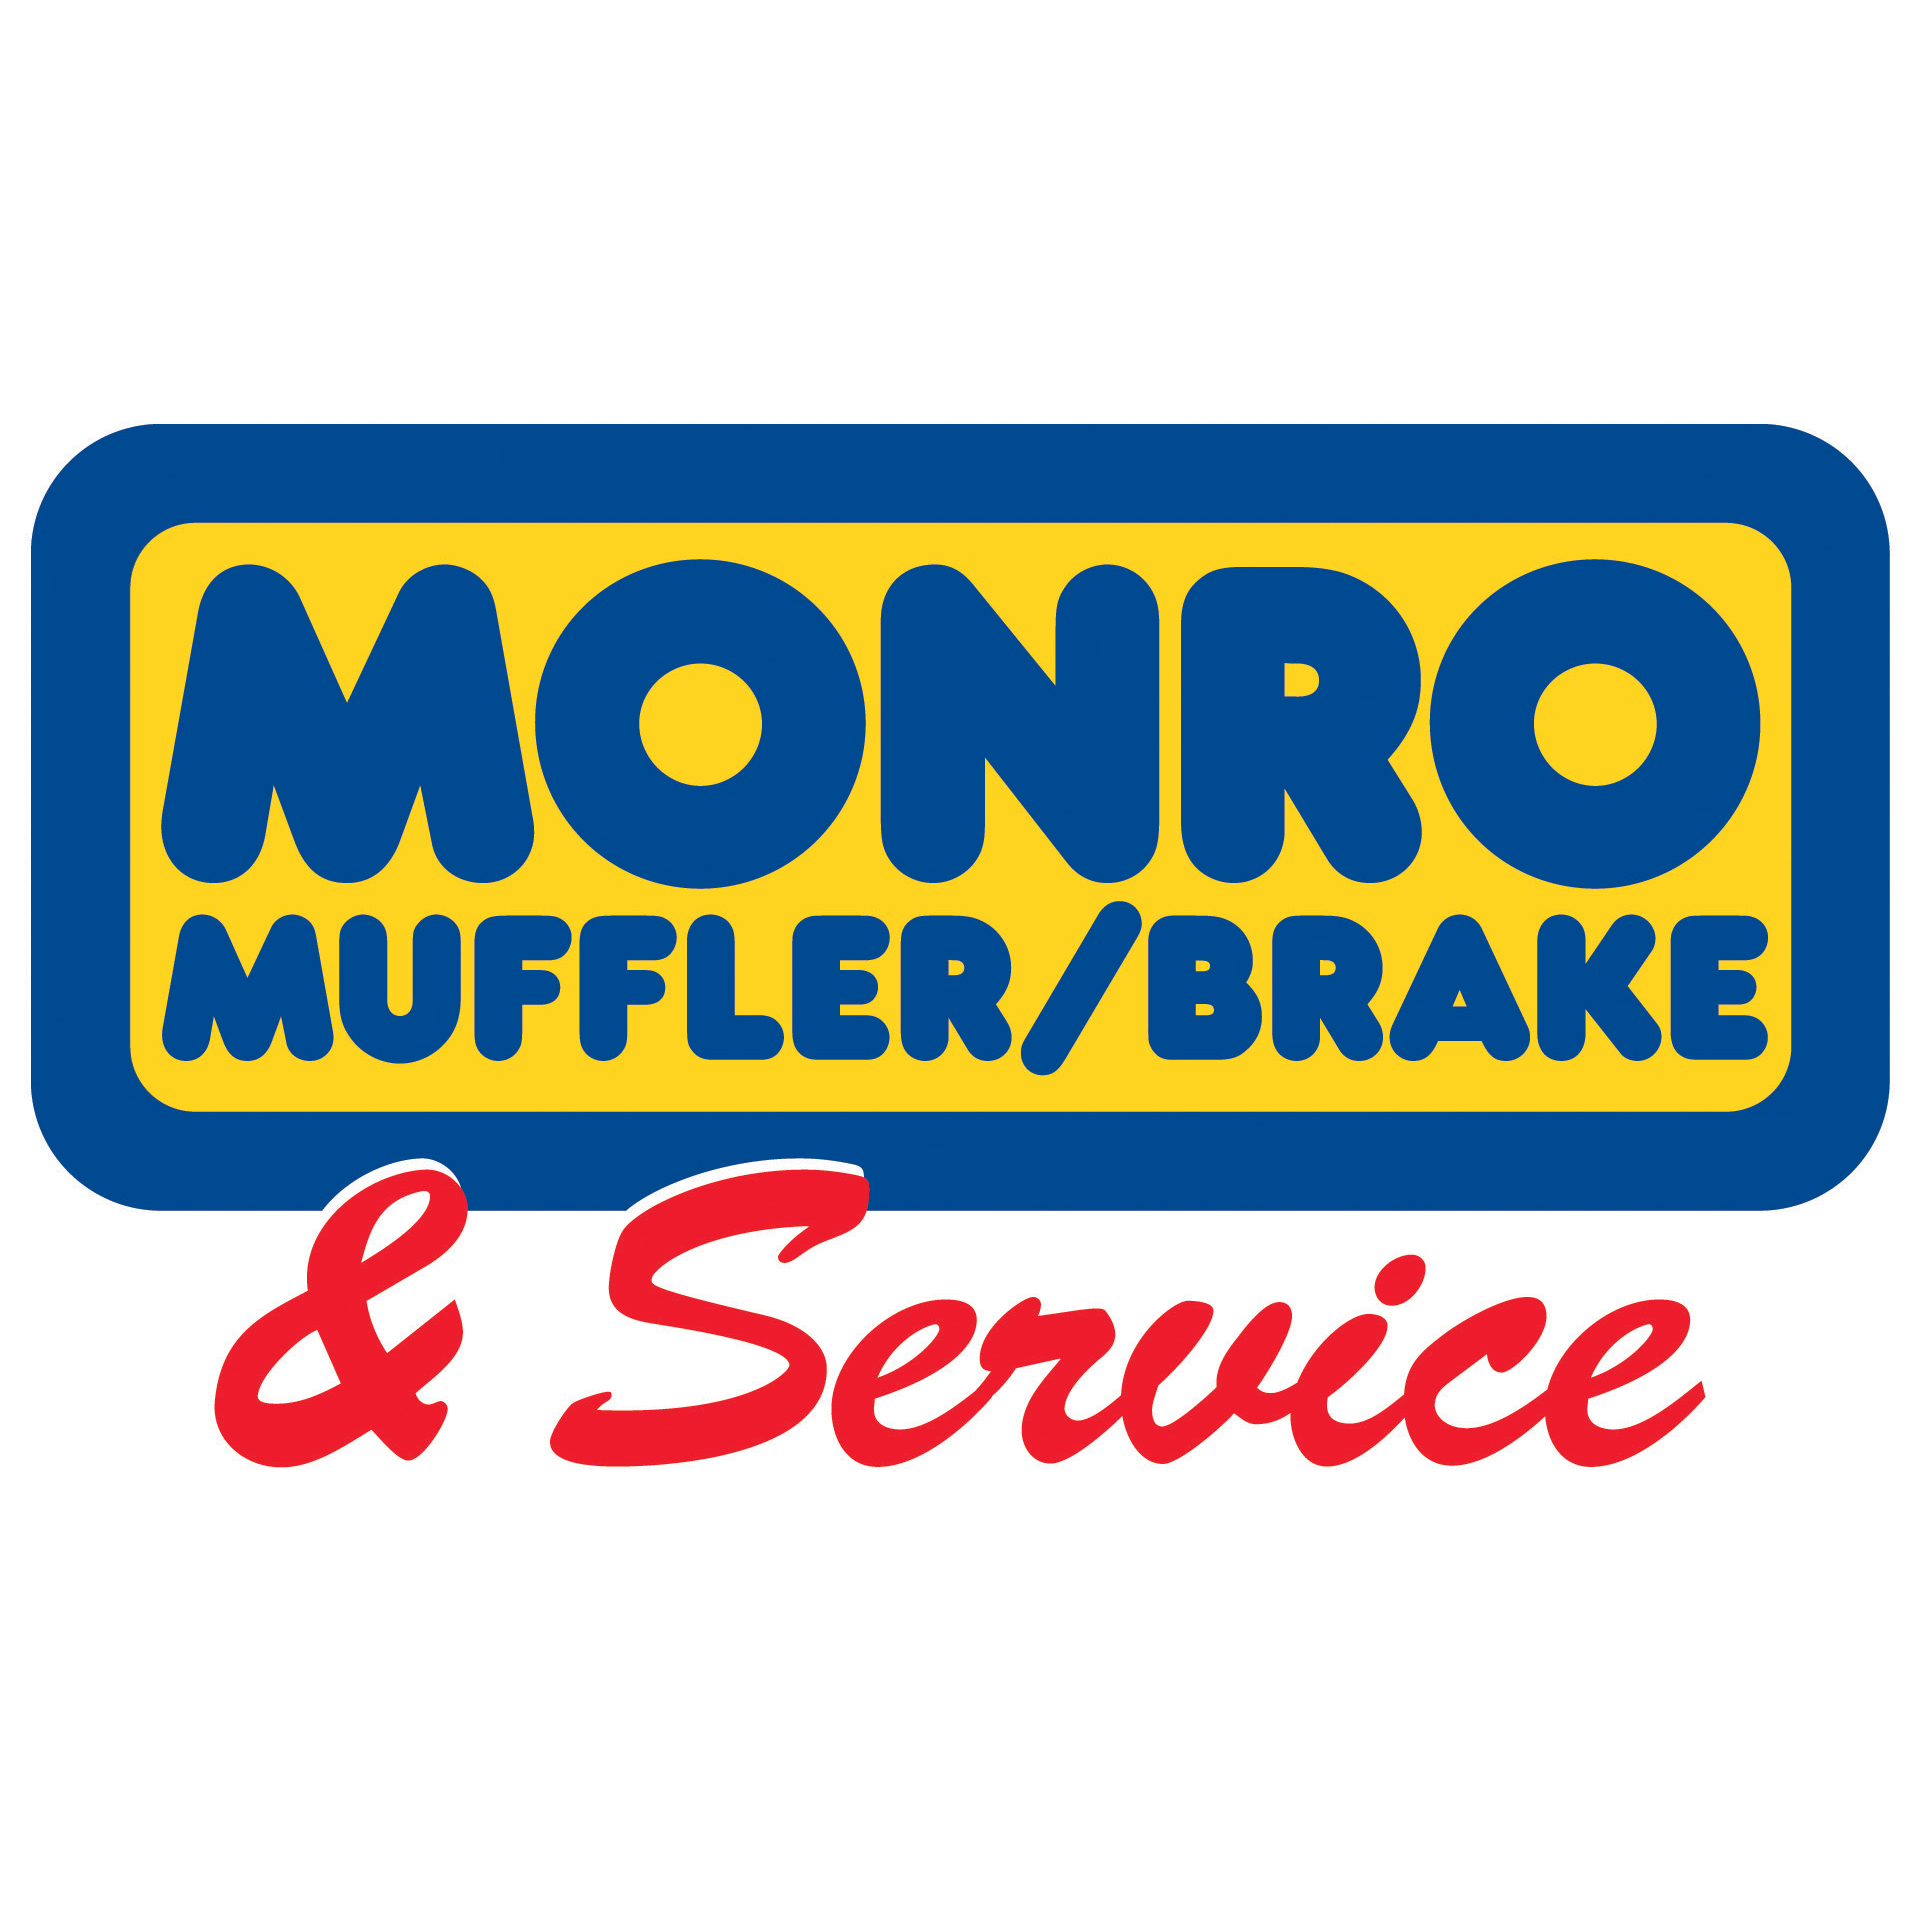 Monro Muffler Brake & Service - Fairmont, WV - General Auto Repair & Service